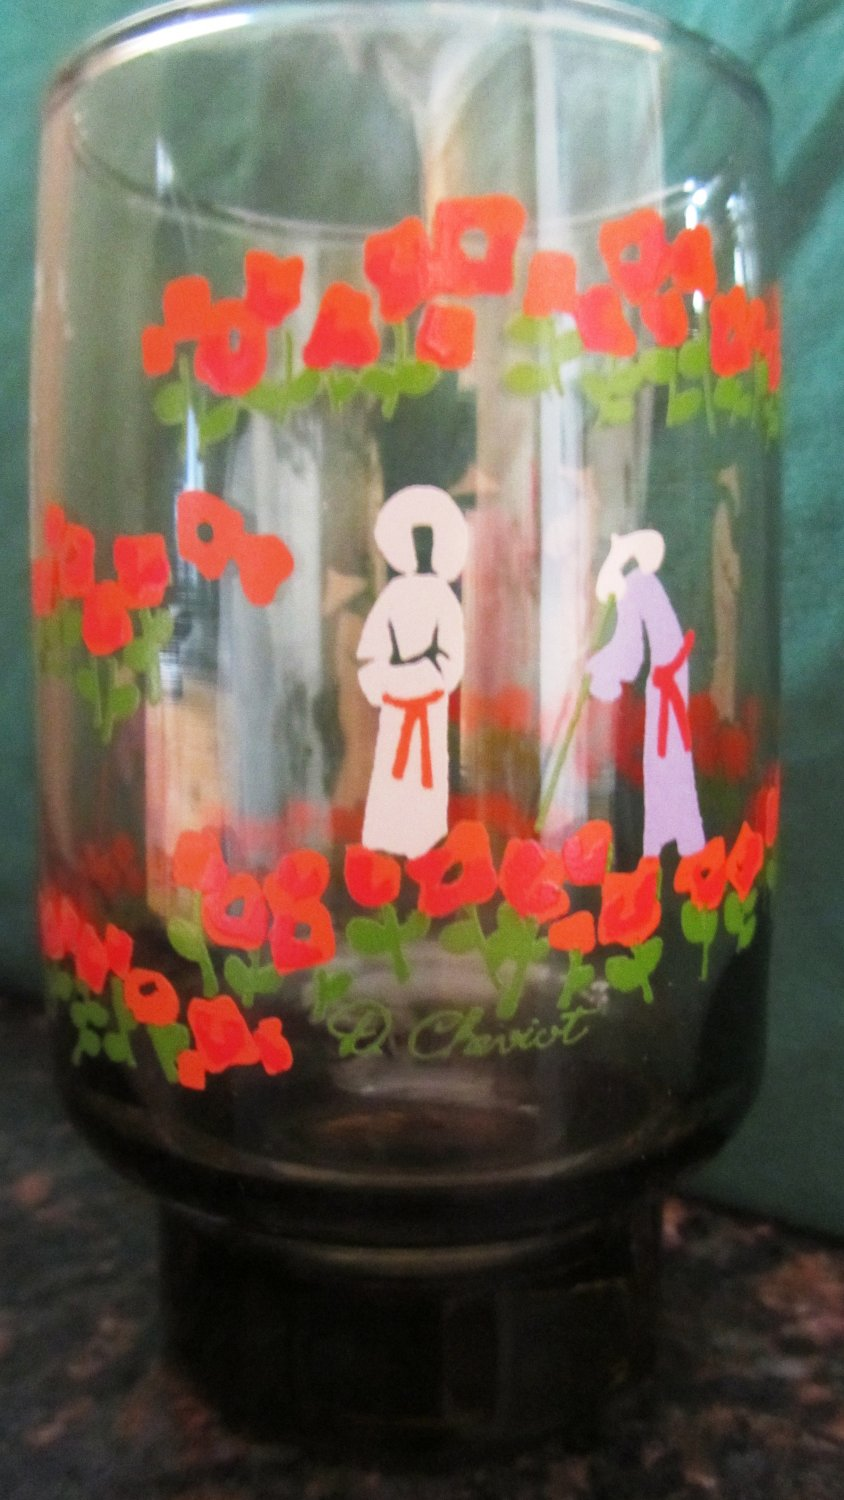 VINTAGE HANDPAINTED SMOKED GLASS SET OF 6 GLASSES D. CHEVIOT FLAMING RED POPPIES